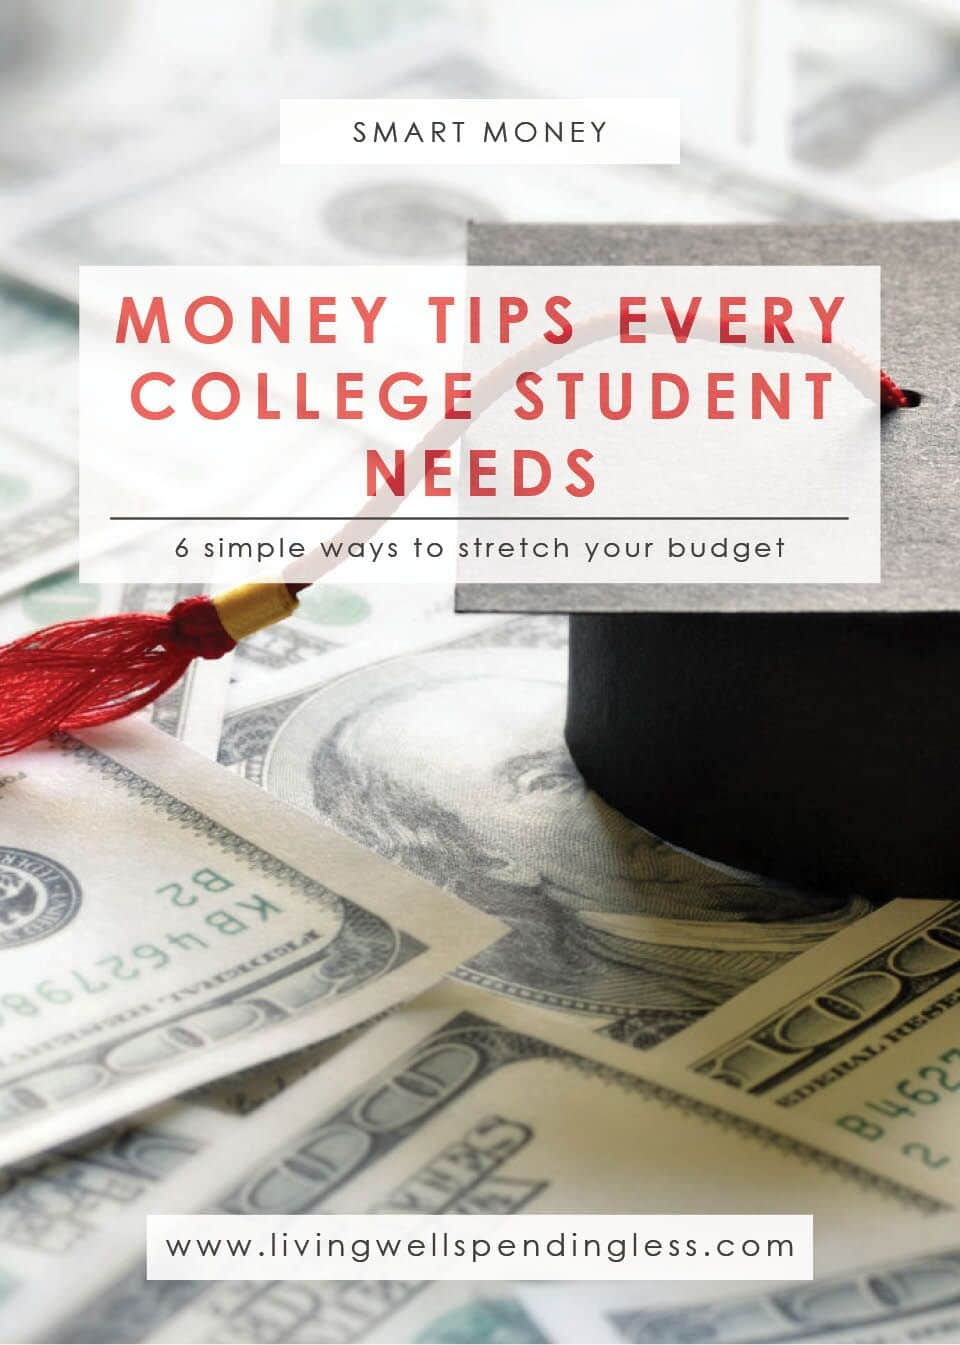 Money Tips Every College Student Needs | Budgeting | Money Saving Tips | Smart Money | Paying for College